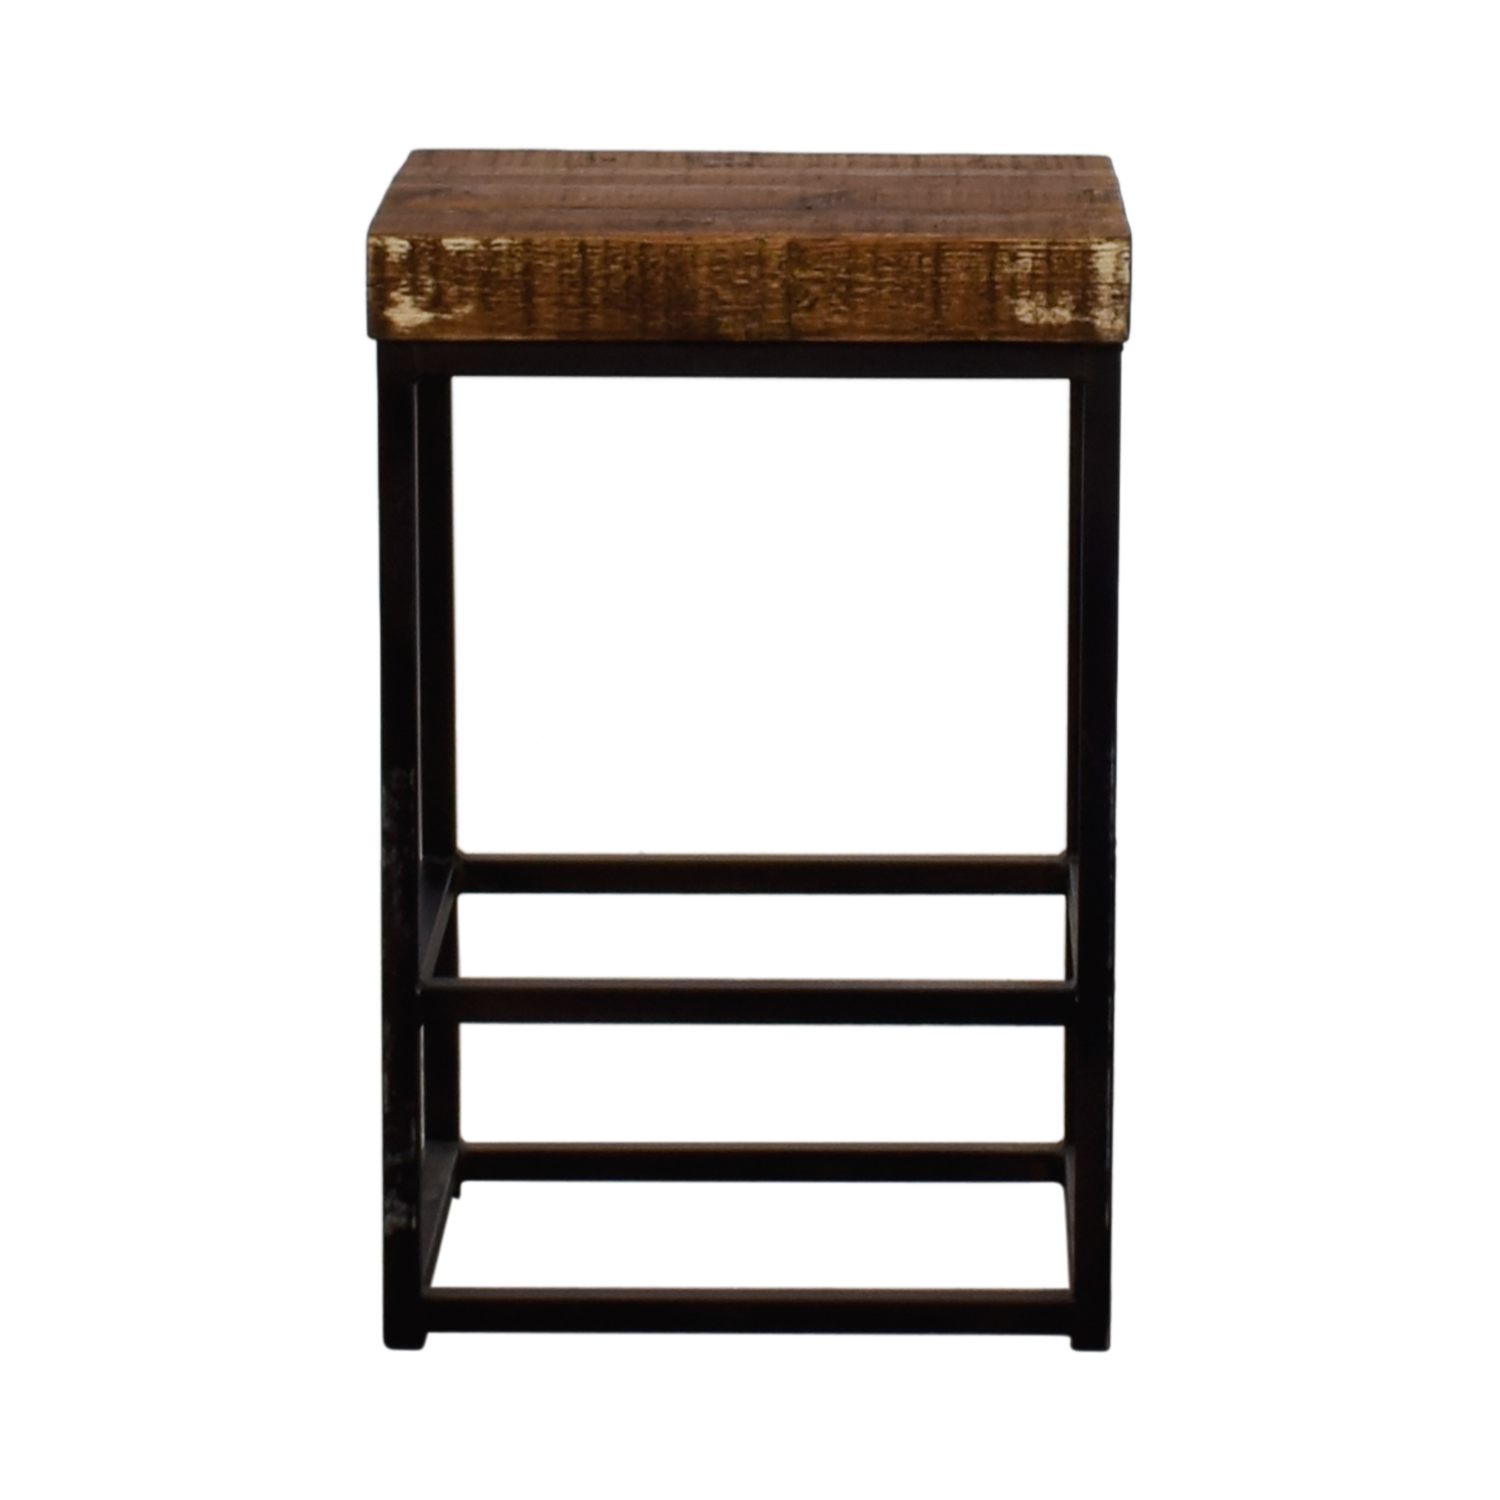 Home Goods Home Goods Wood and Metal Night Stand price